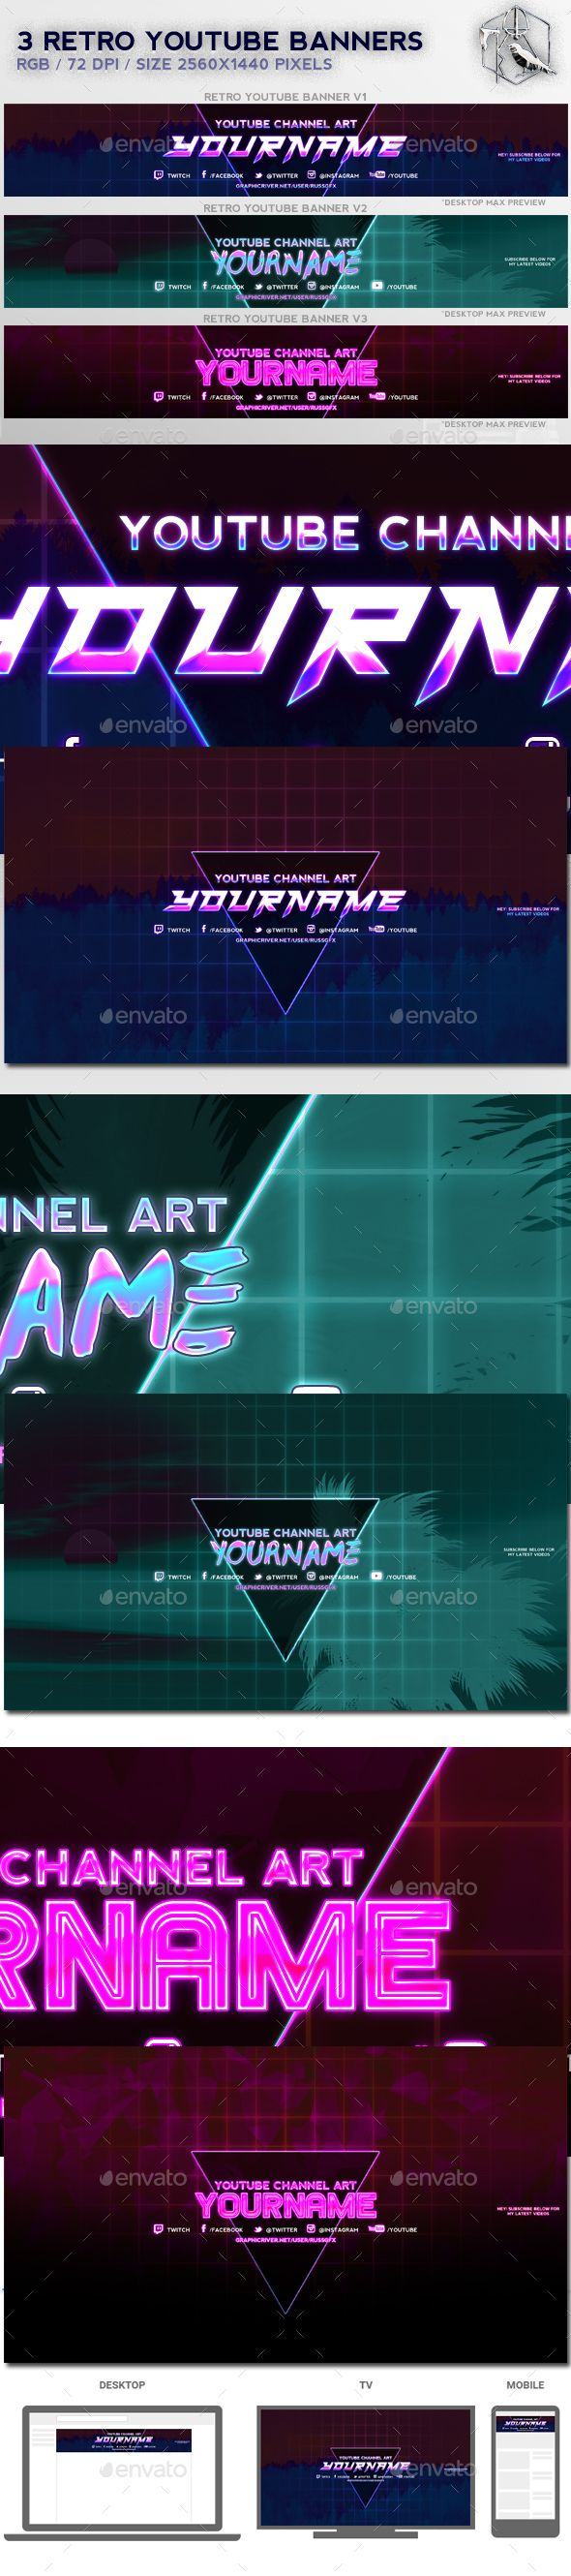 2560×1440 Template Youtube Banner Png Download - The Power